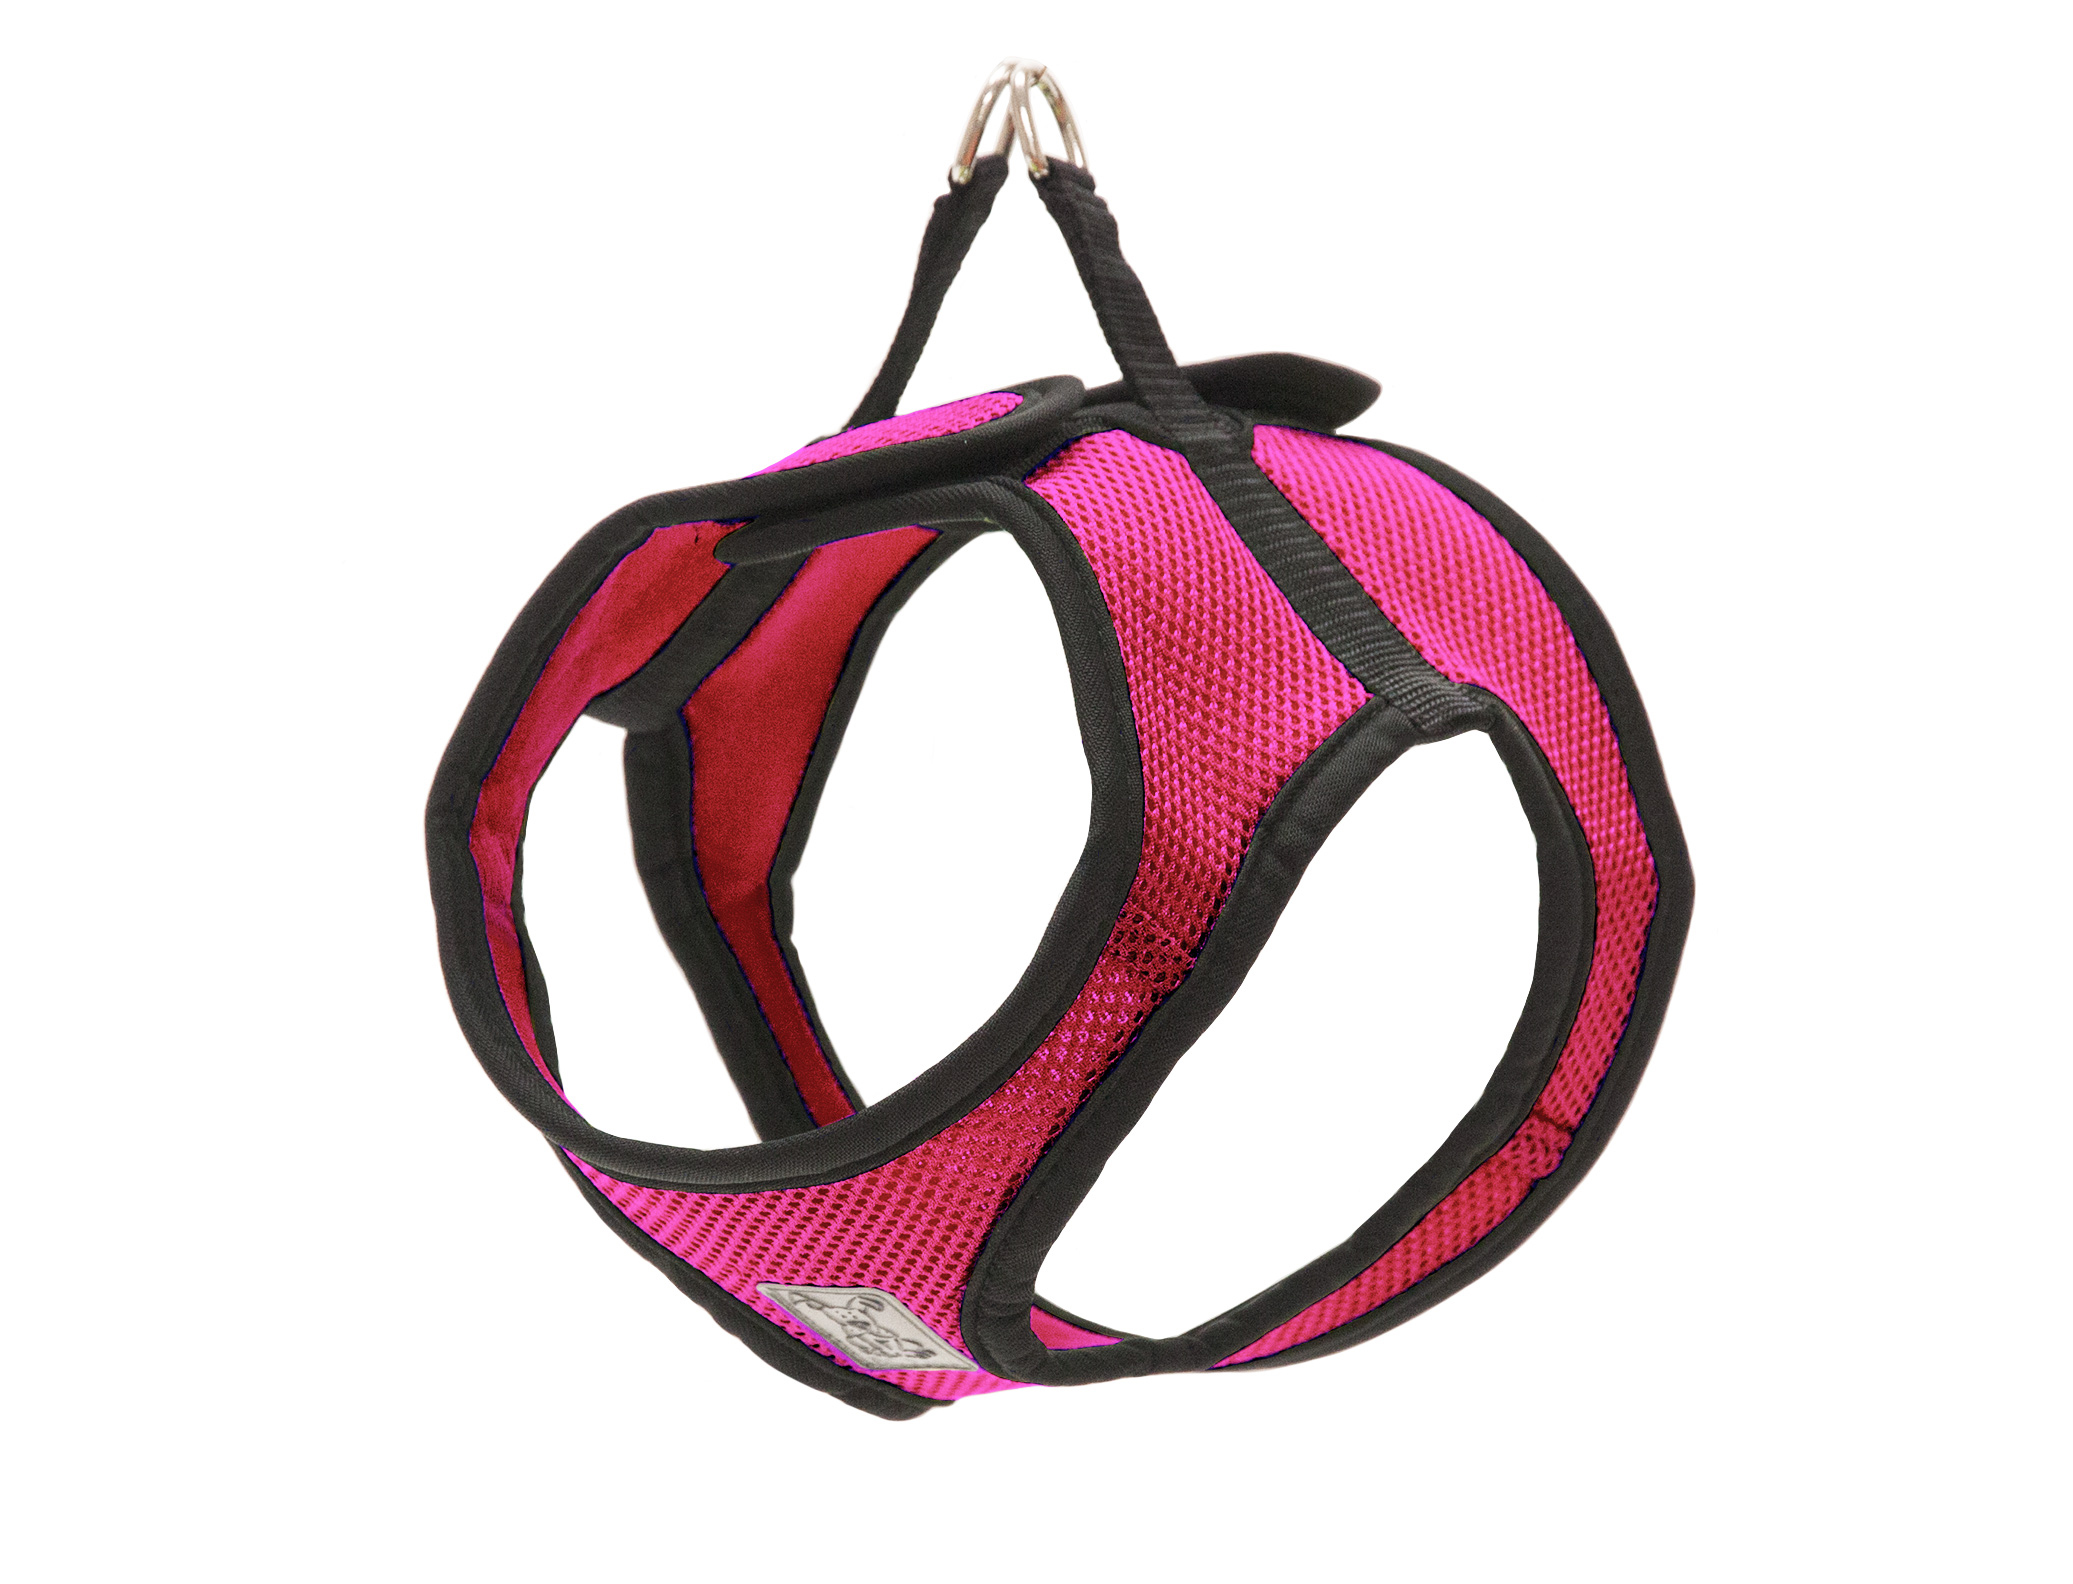 RC Pet ProductsStep-In Cirque Dog Harness, Raspberry, XX-Small